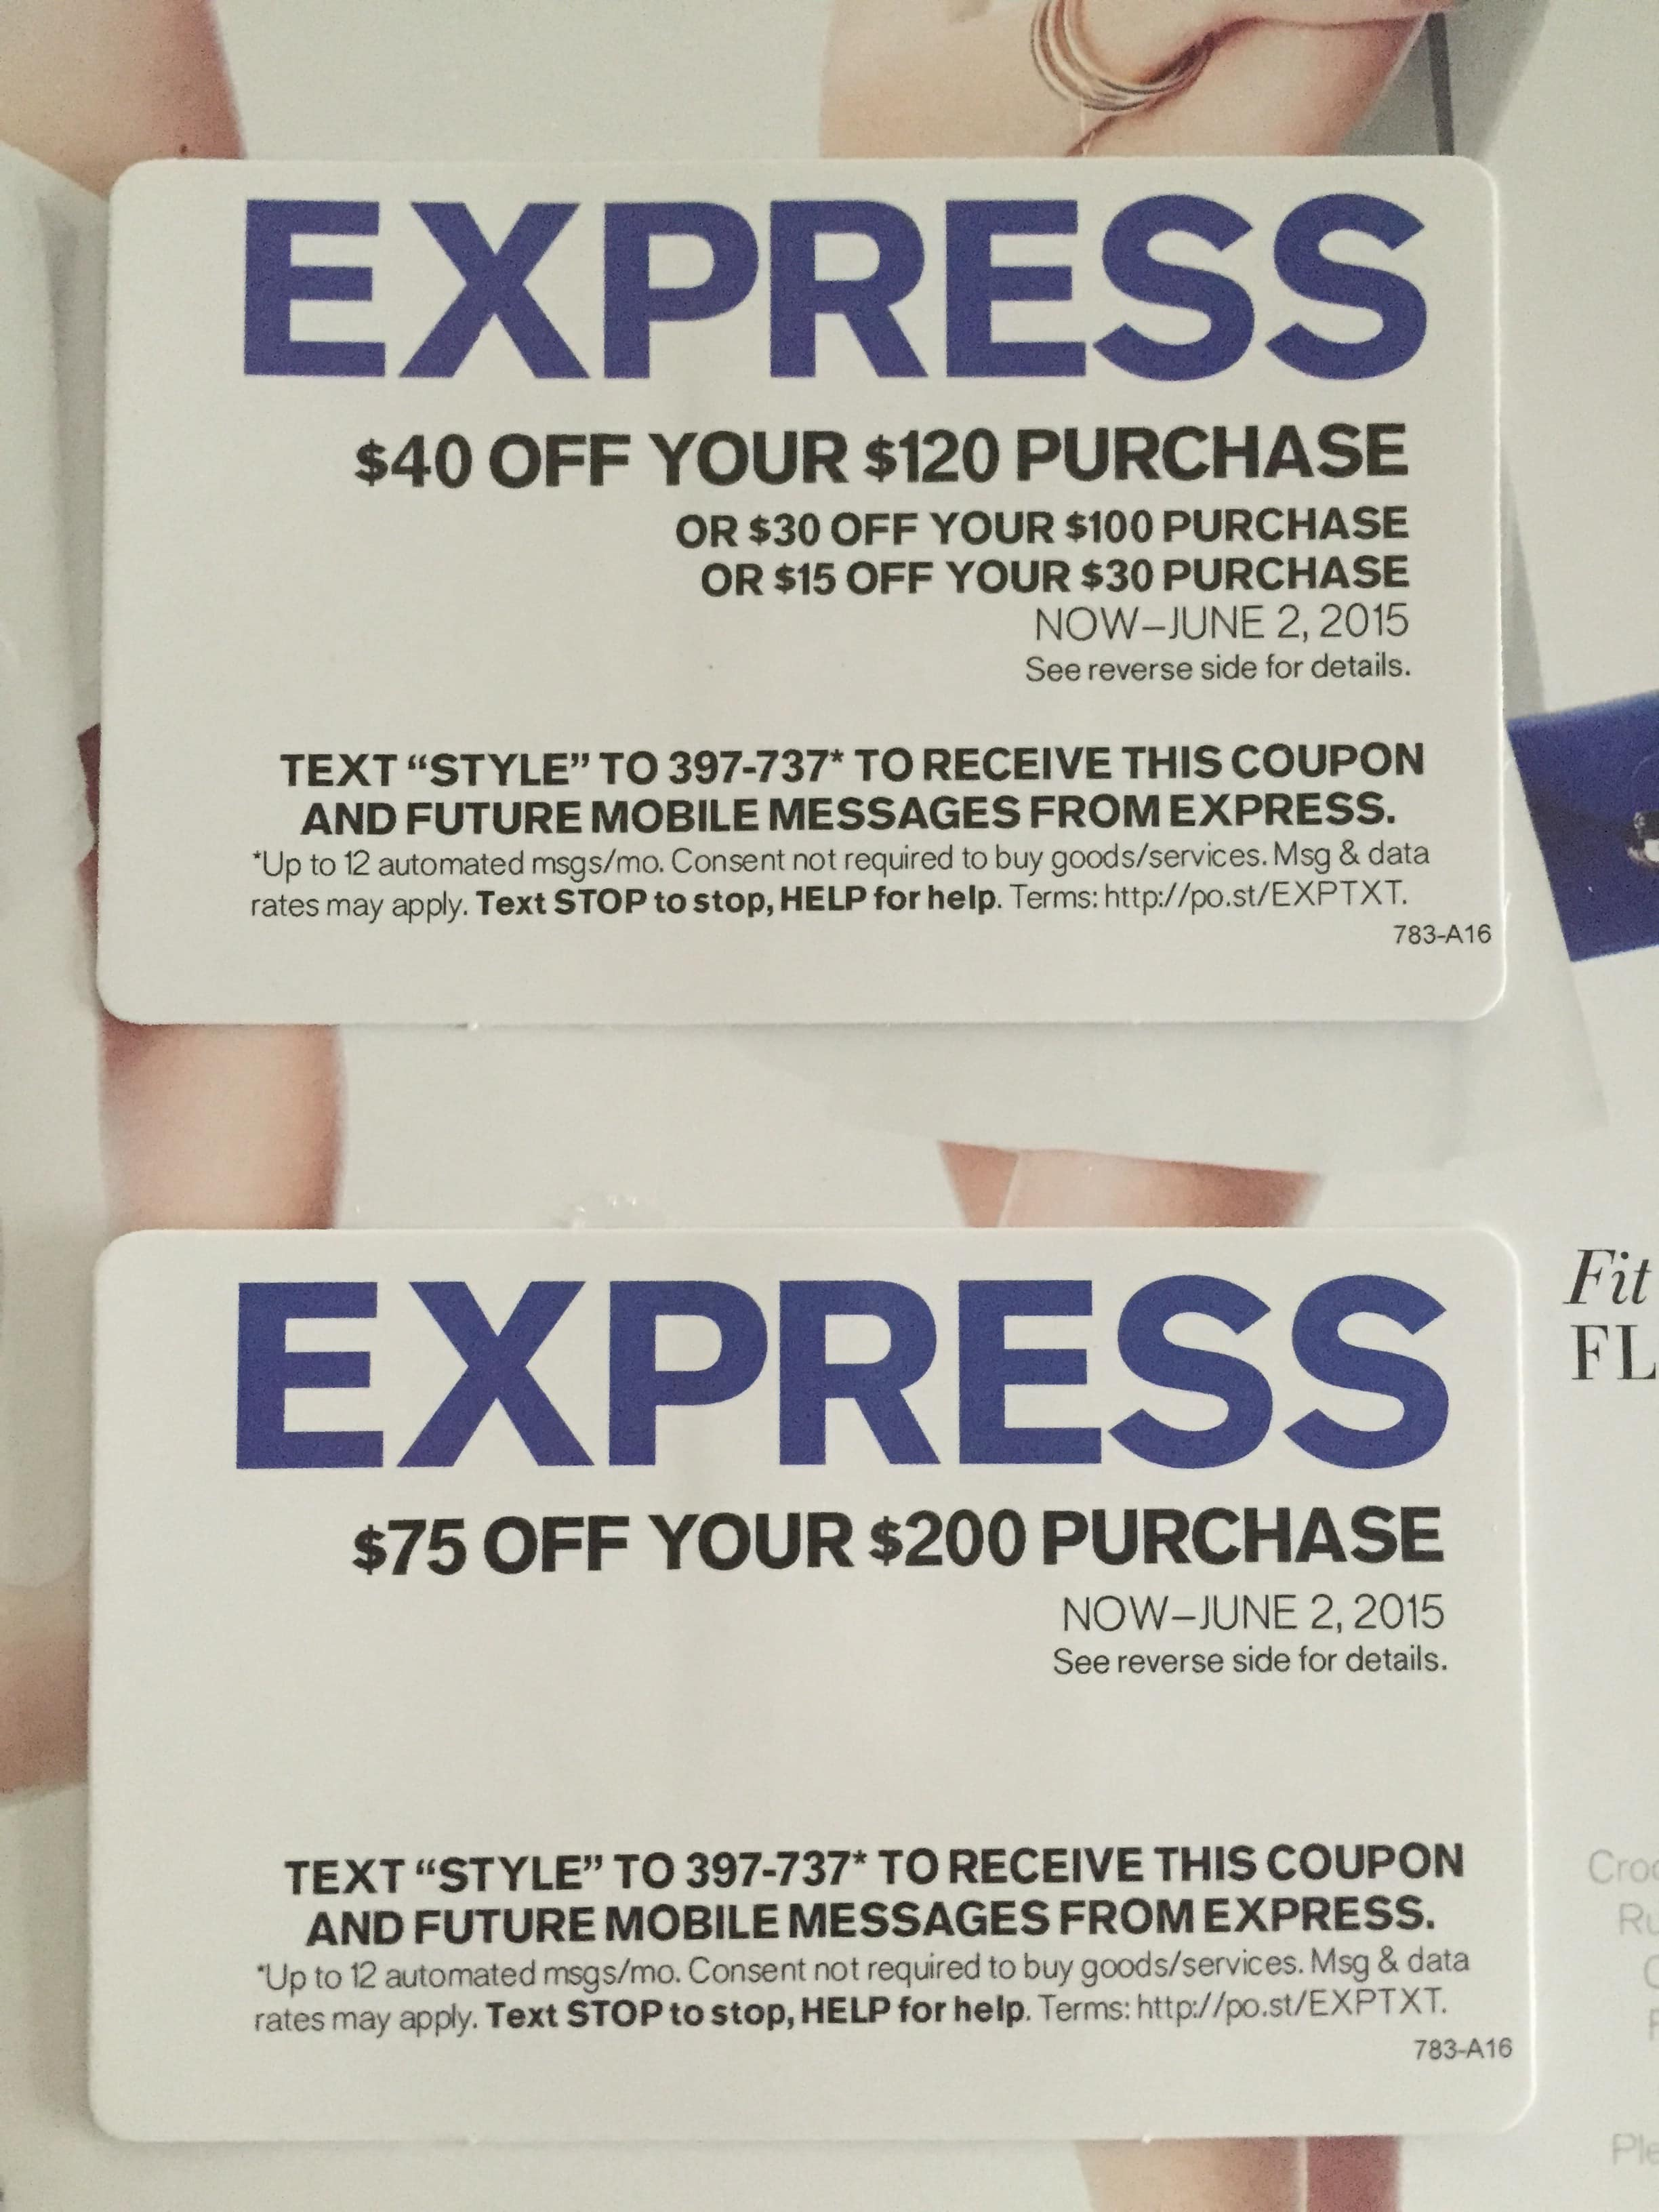 Express $75 off on $200 purchase OR $40 off on $120 purchase